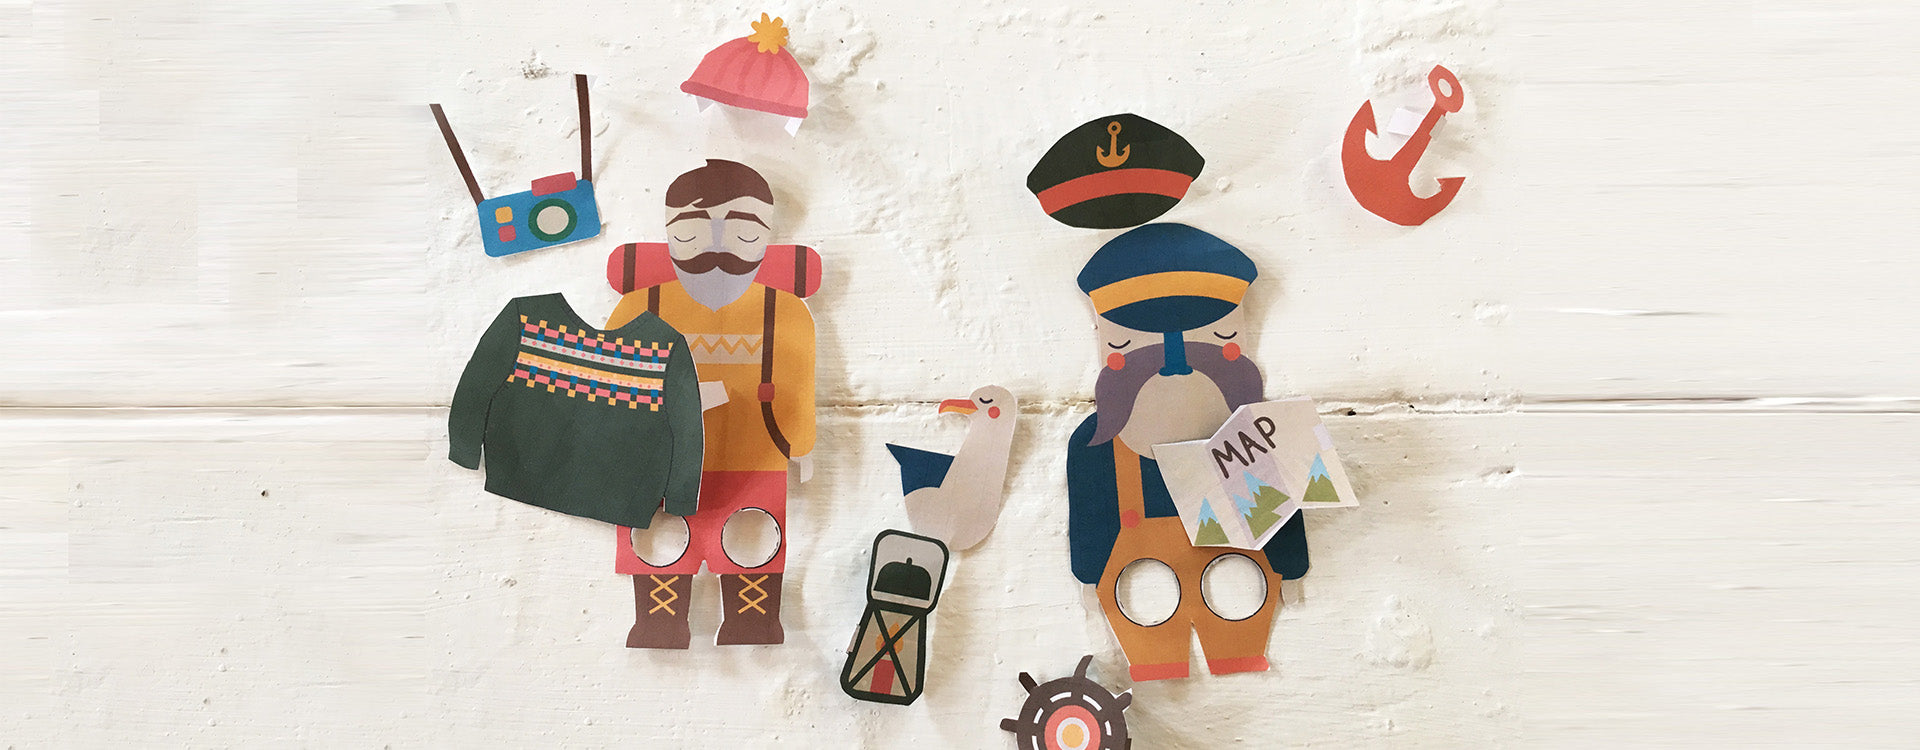 Dress up finger puppets! It's bank holiday craft time.